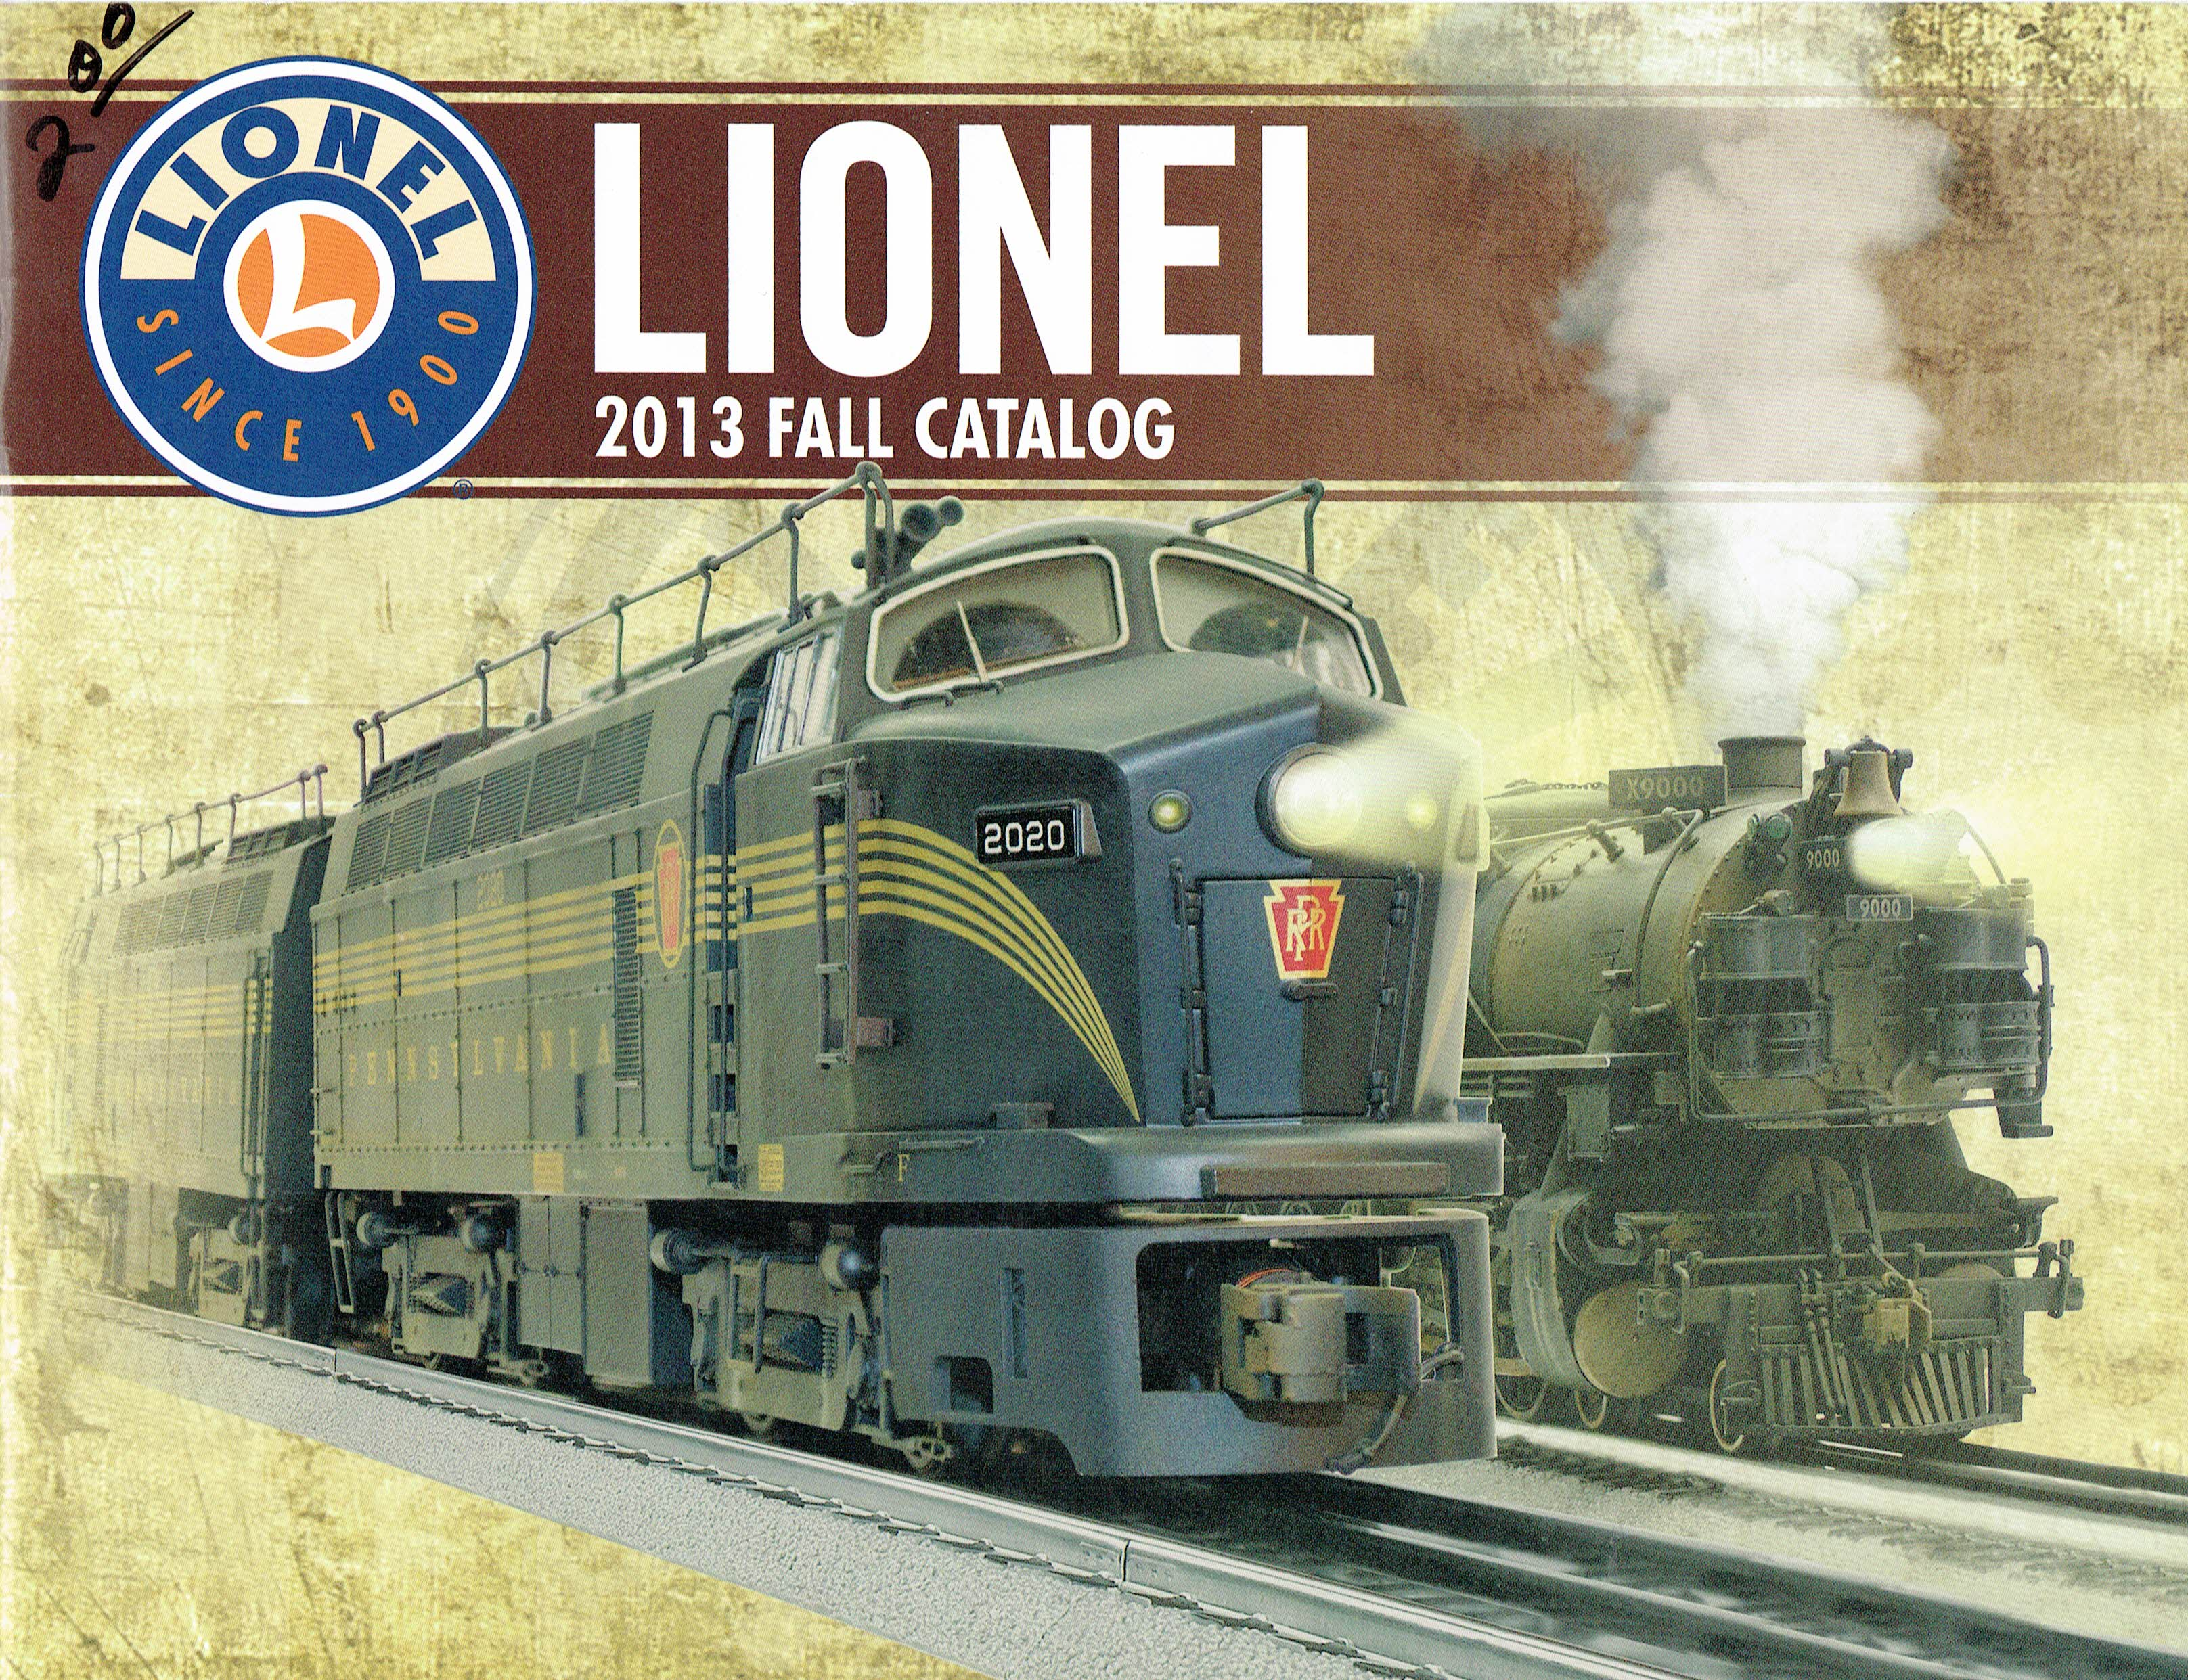 Lionel 2013 Fall Catalog image